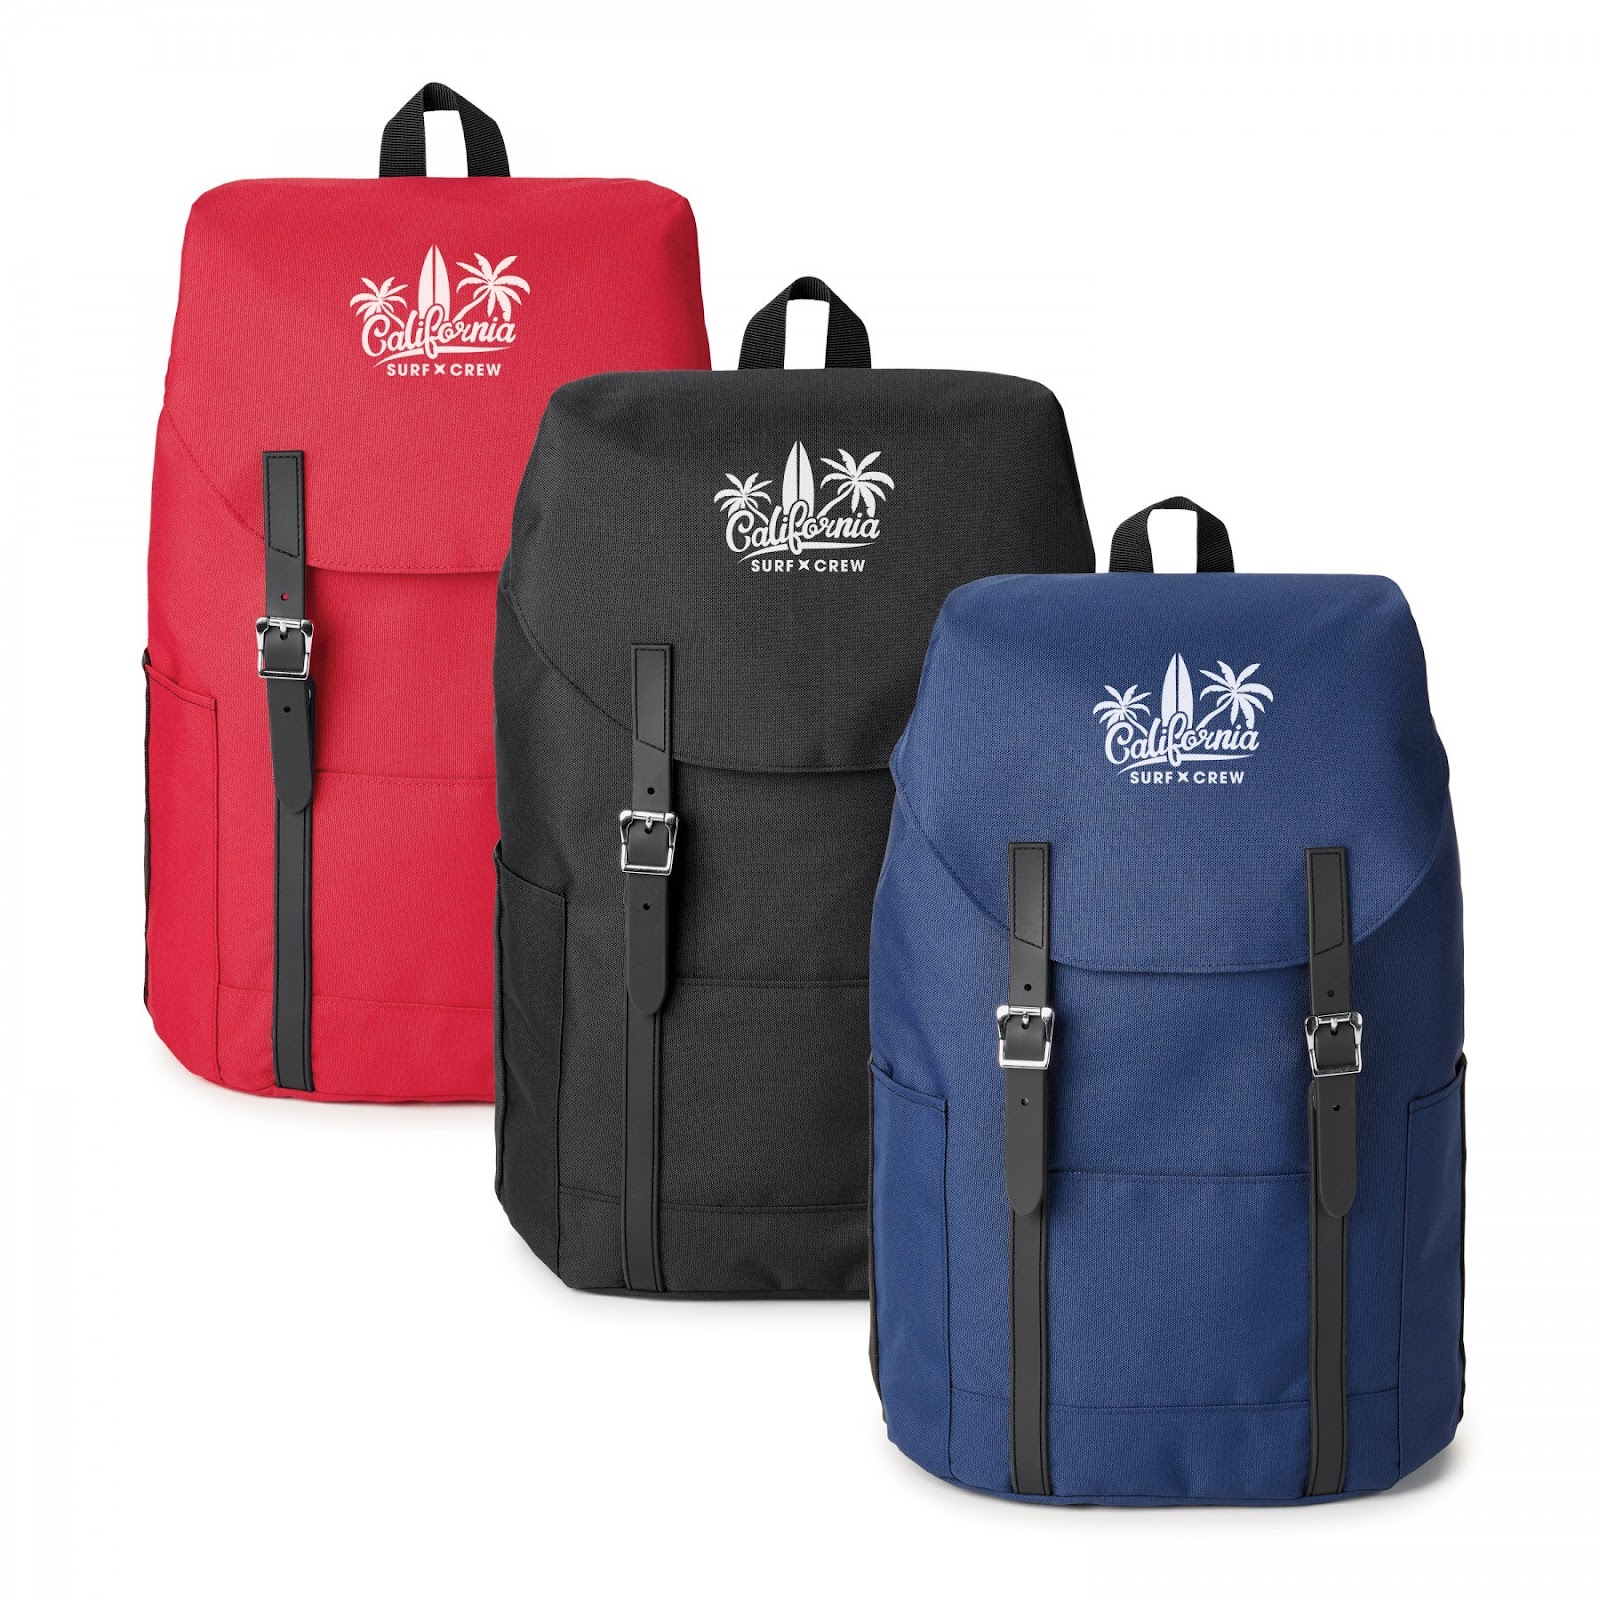 flip-top logo backpack